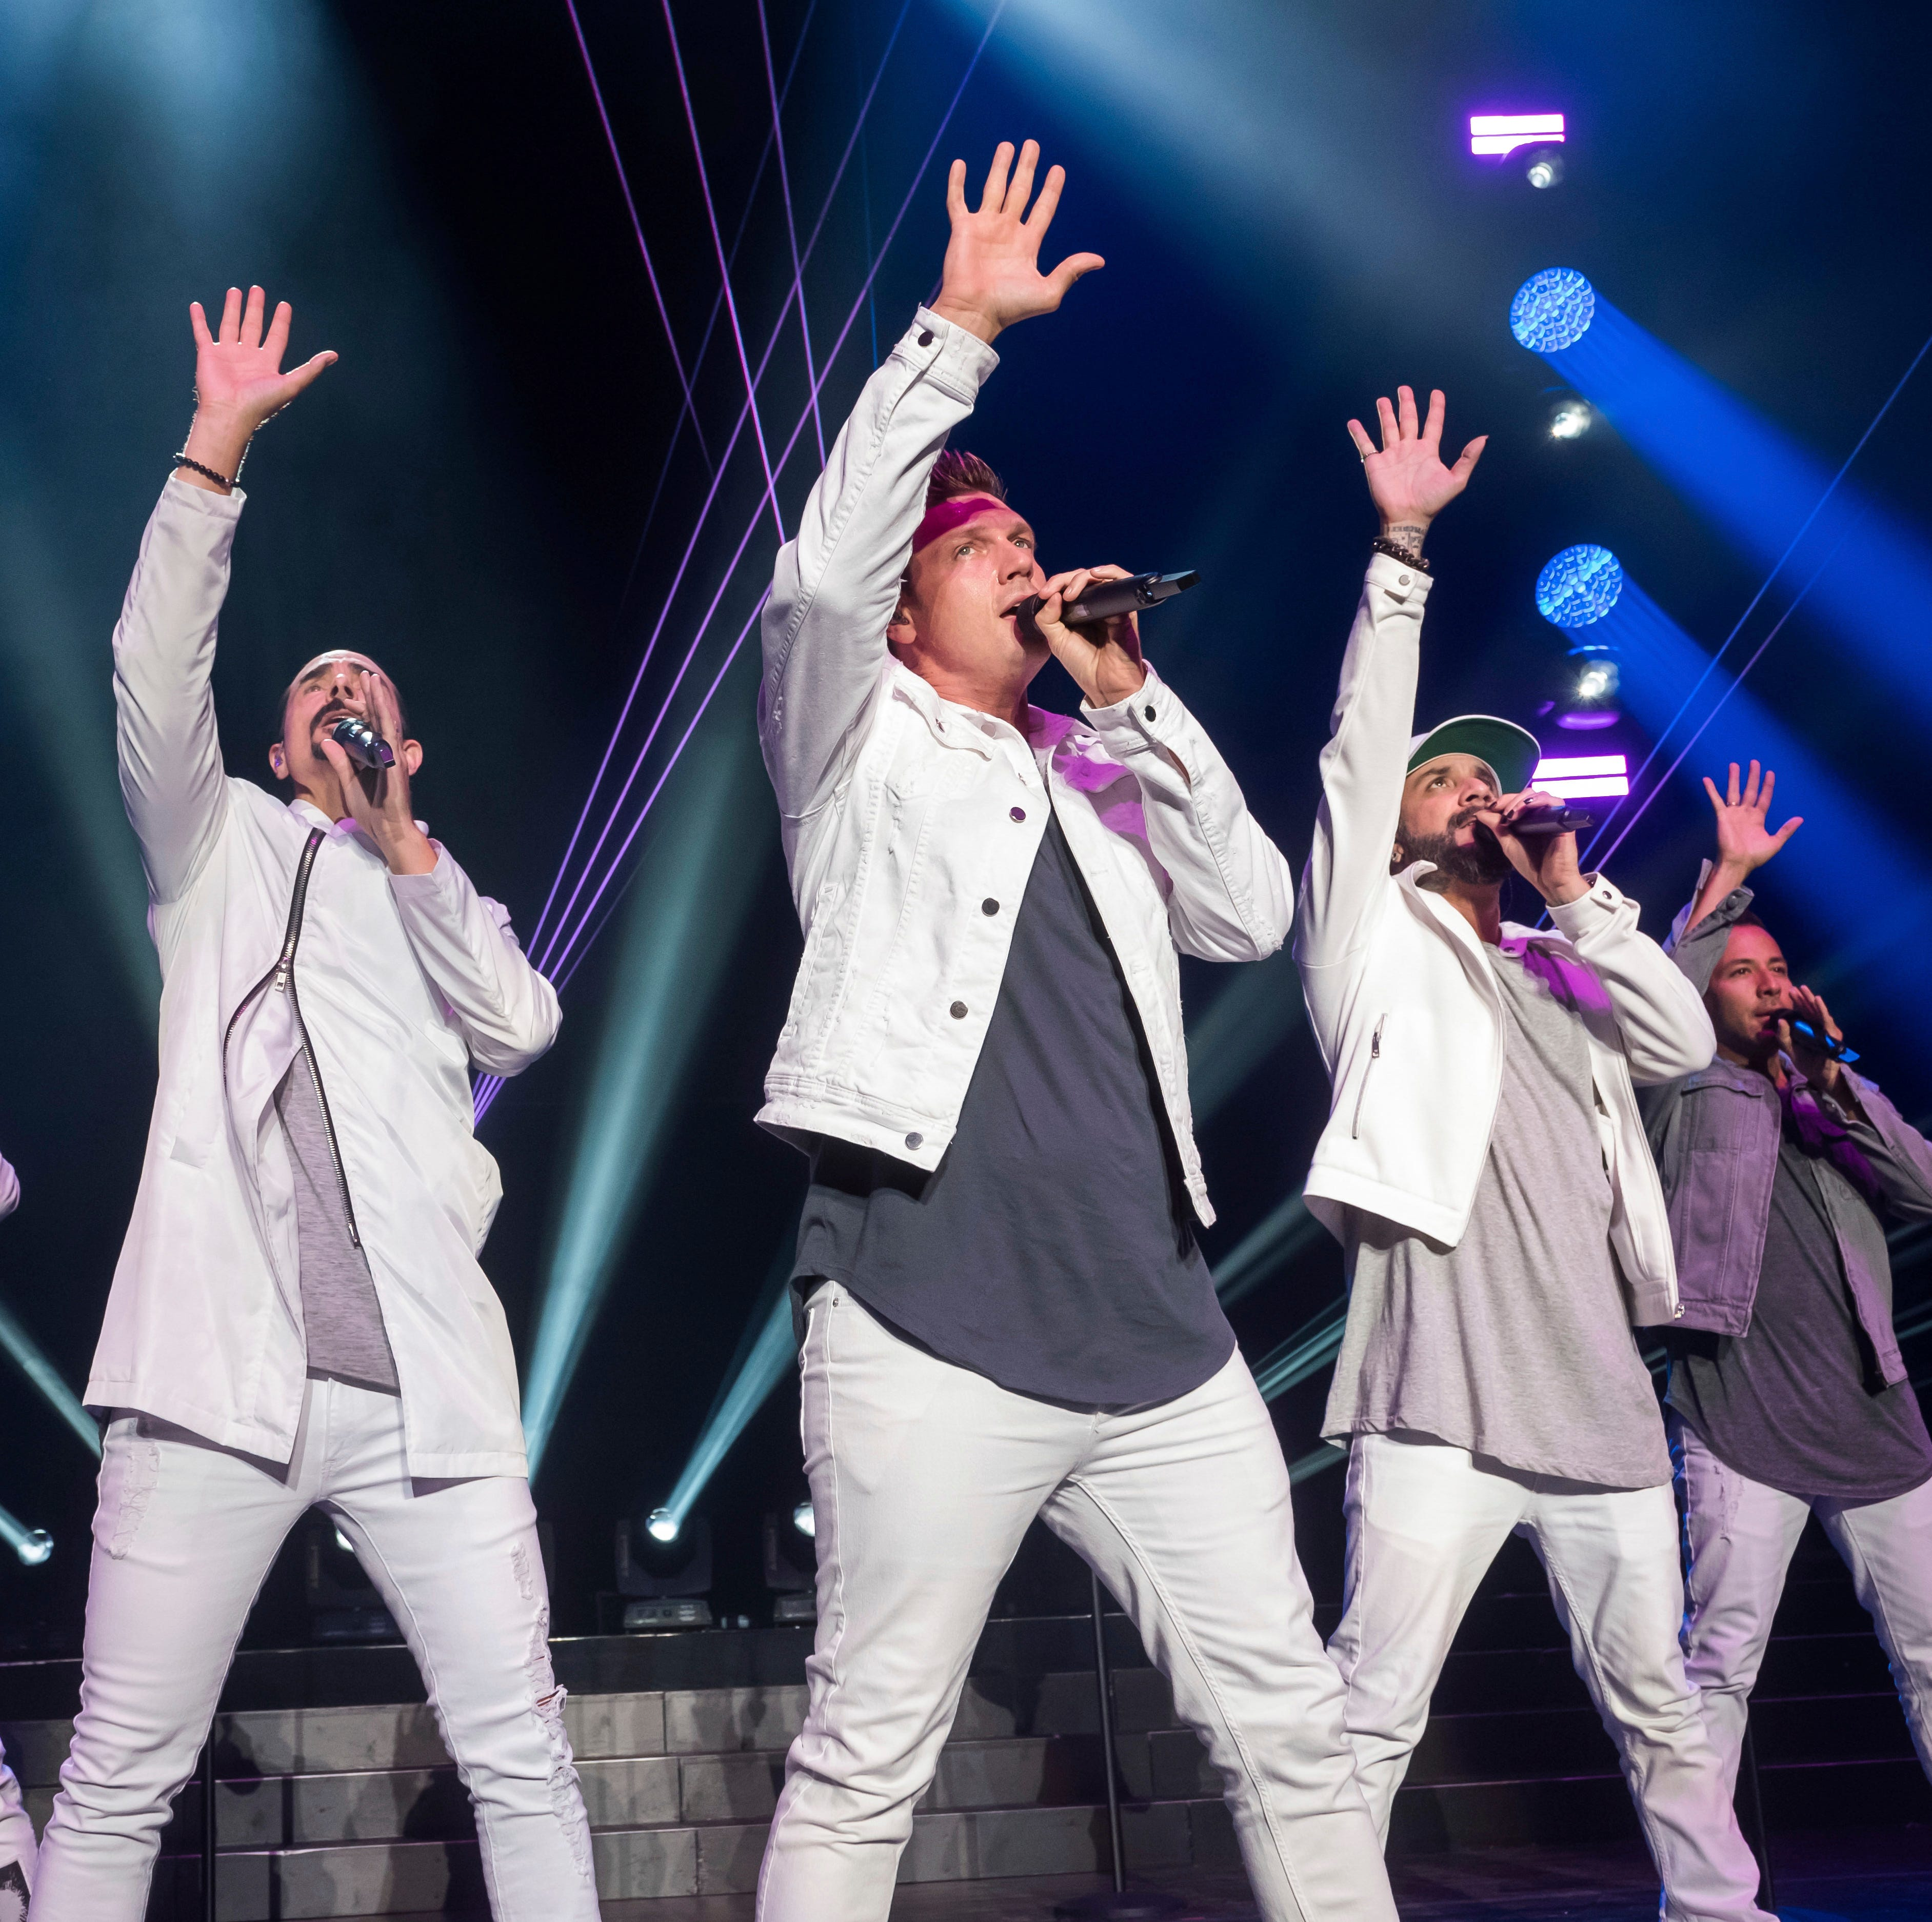 Backstreet Boys world tour comes to Louisville in 2019